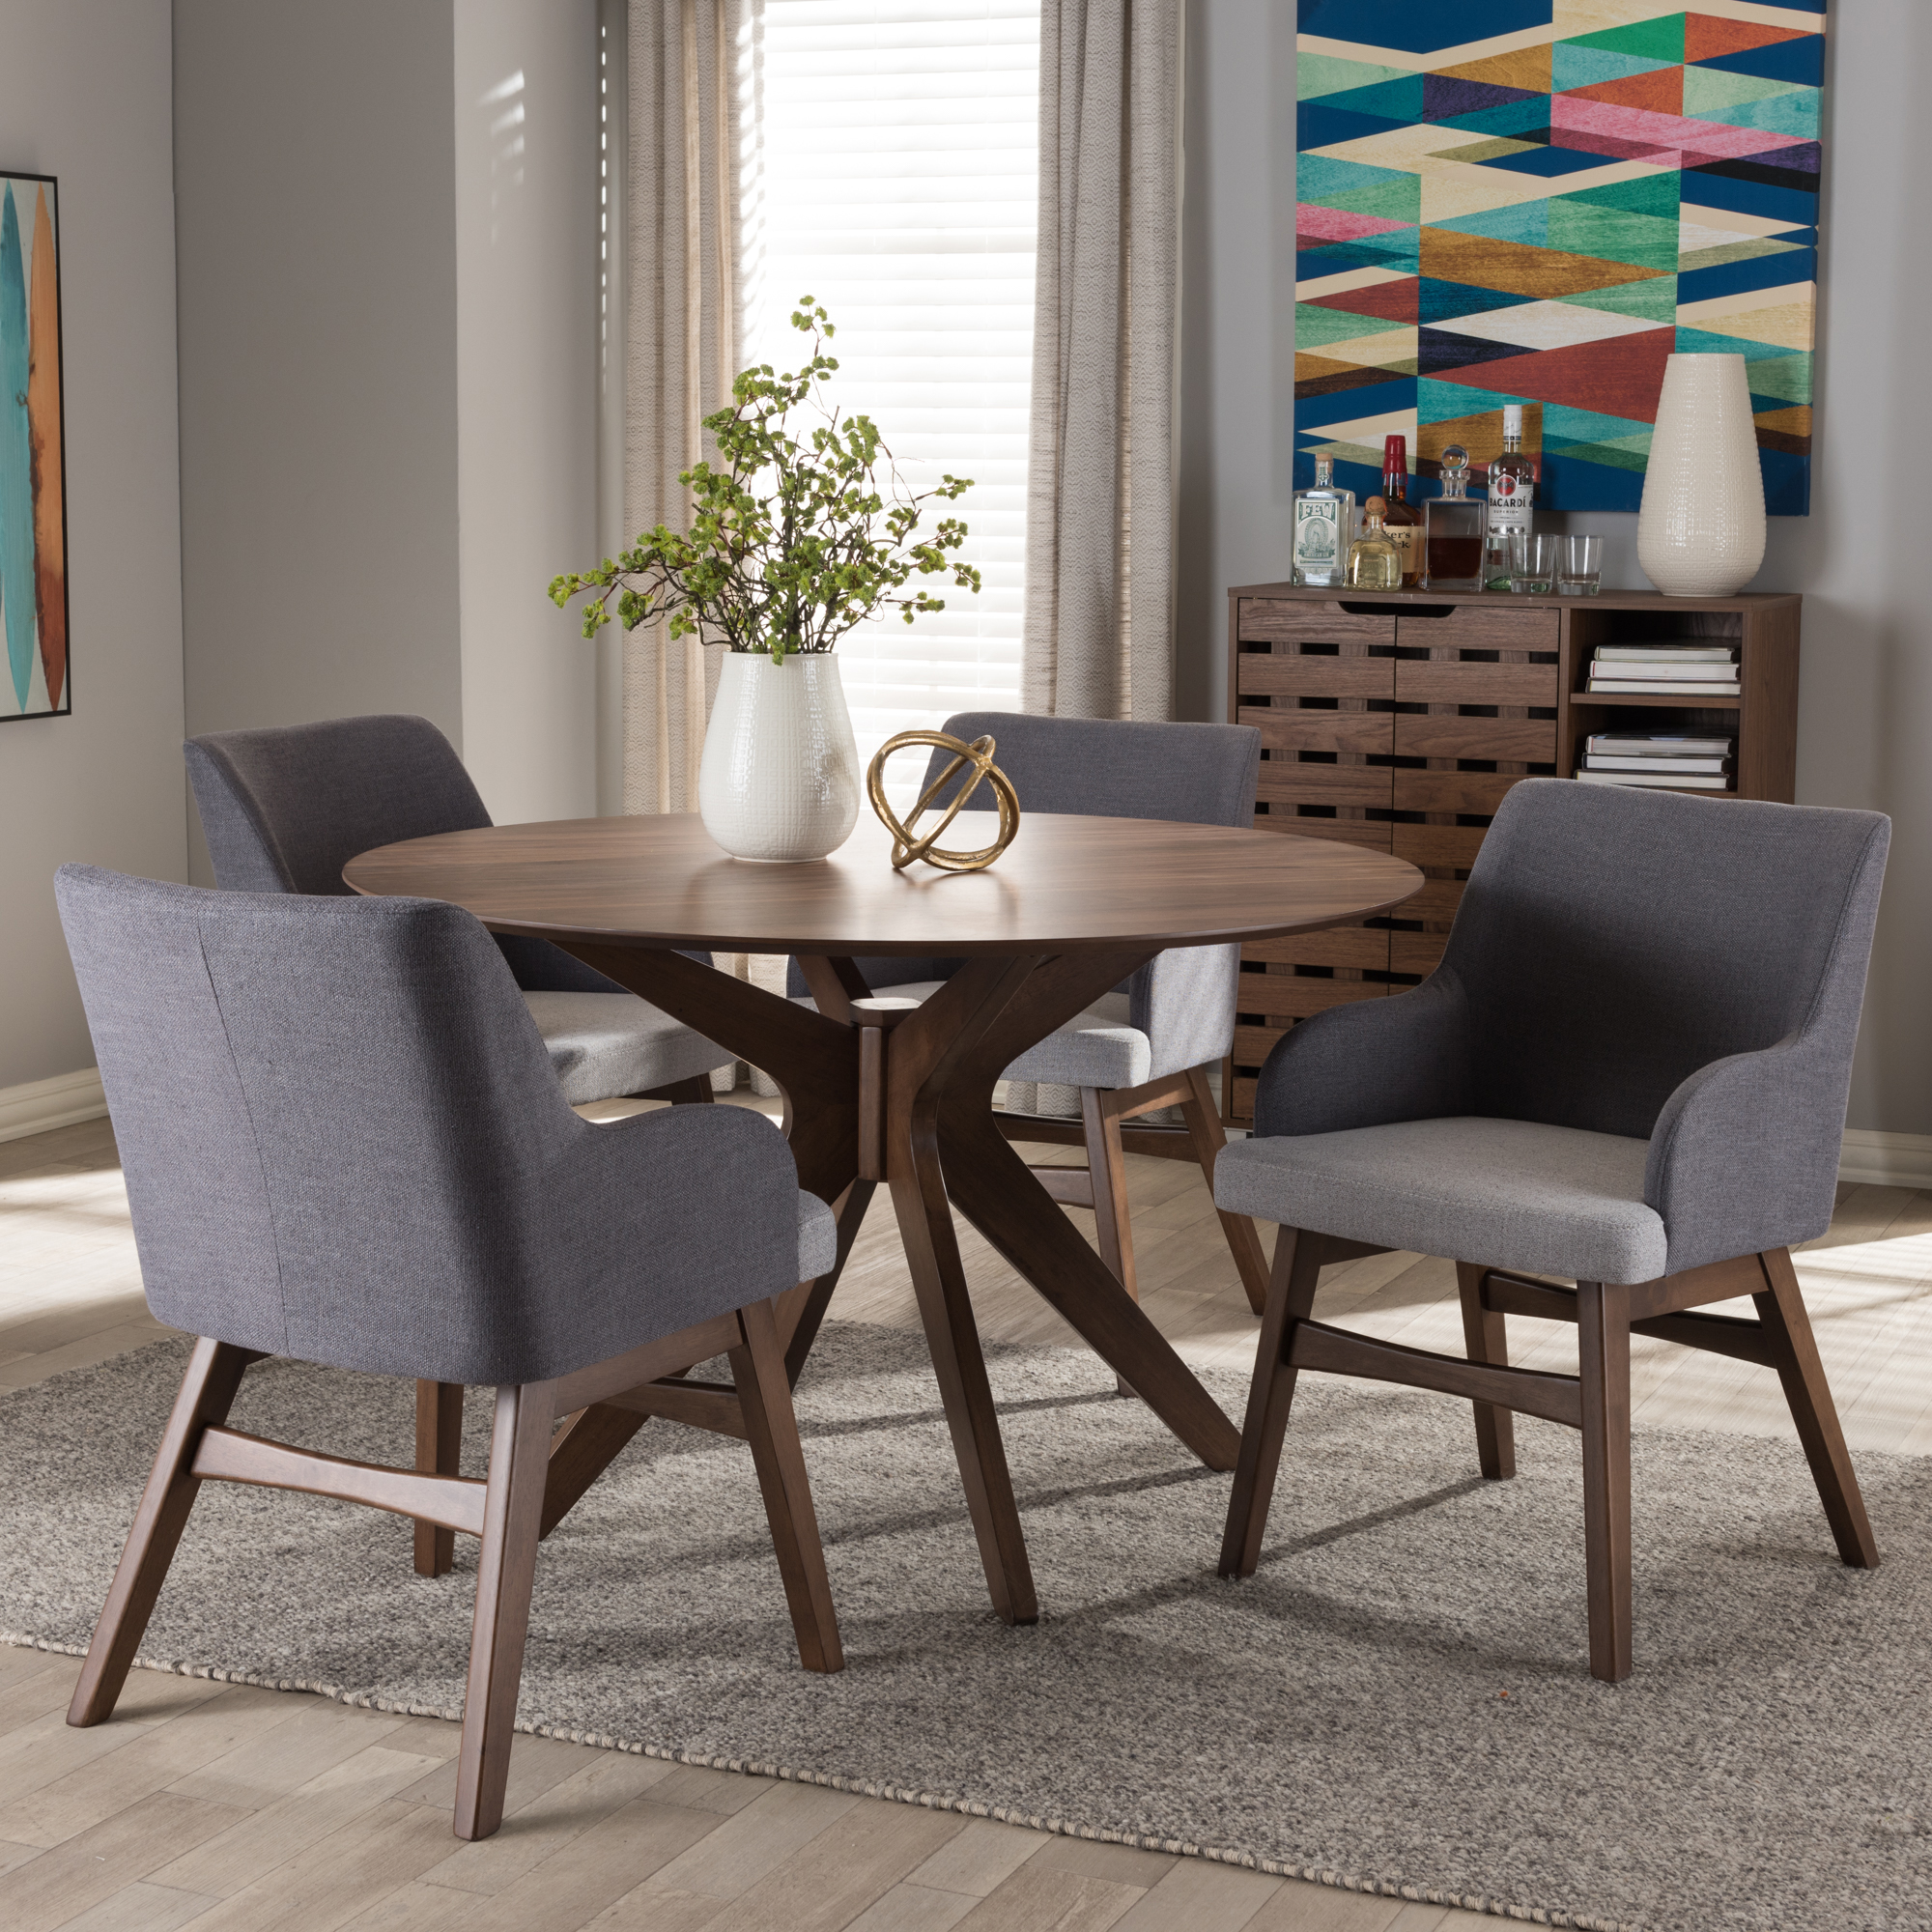 ... Baxton Studio Monte Mid Century Modern Walnut Wood Round 5 Piece Dining  Set ... Part 87